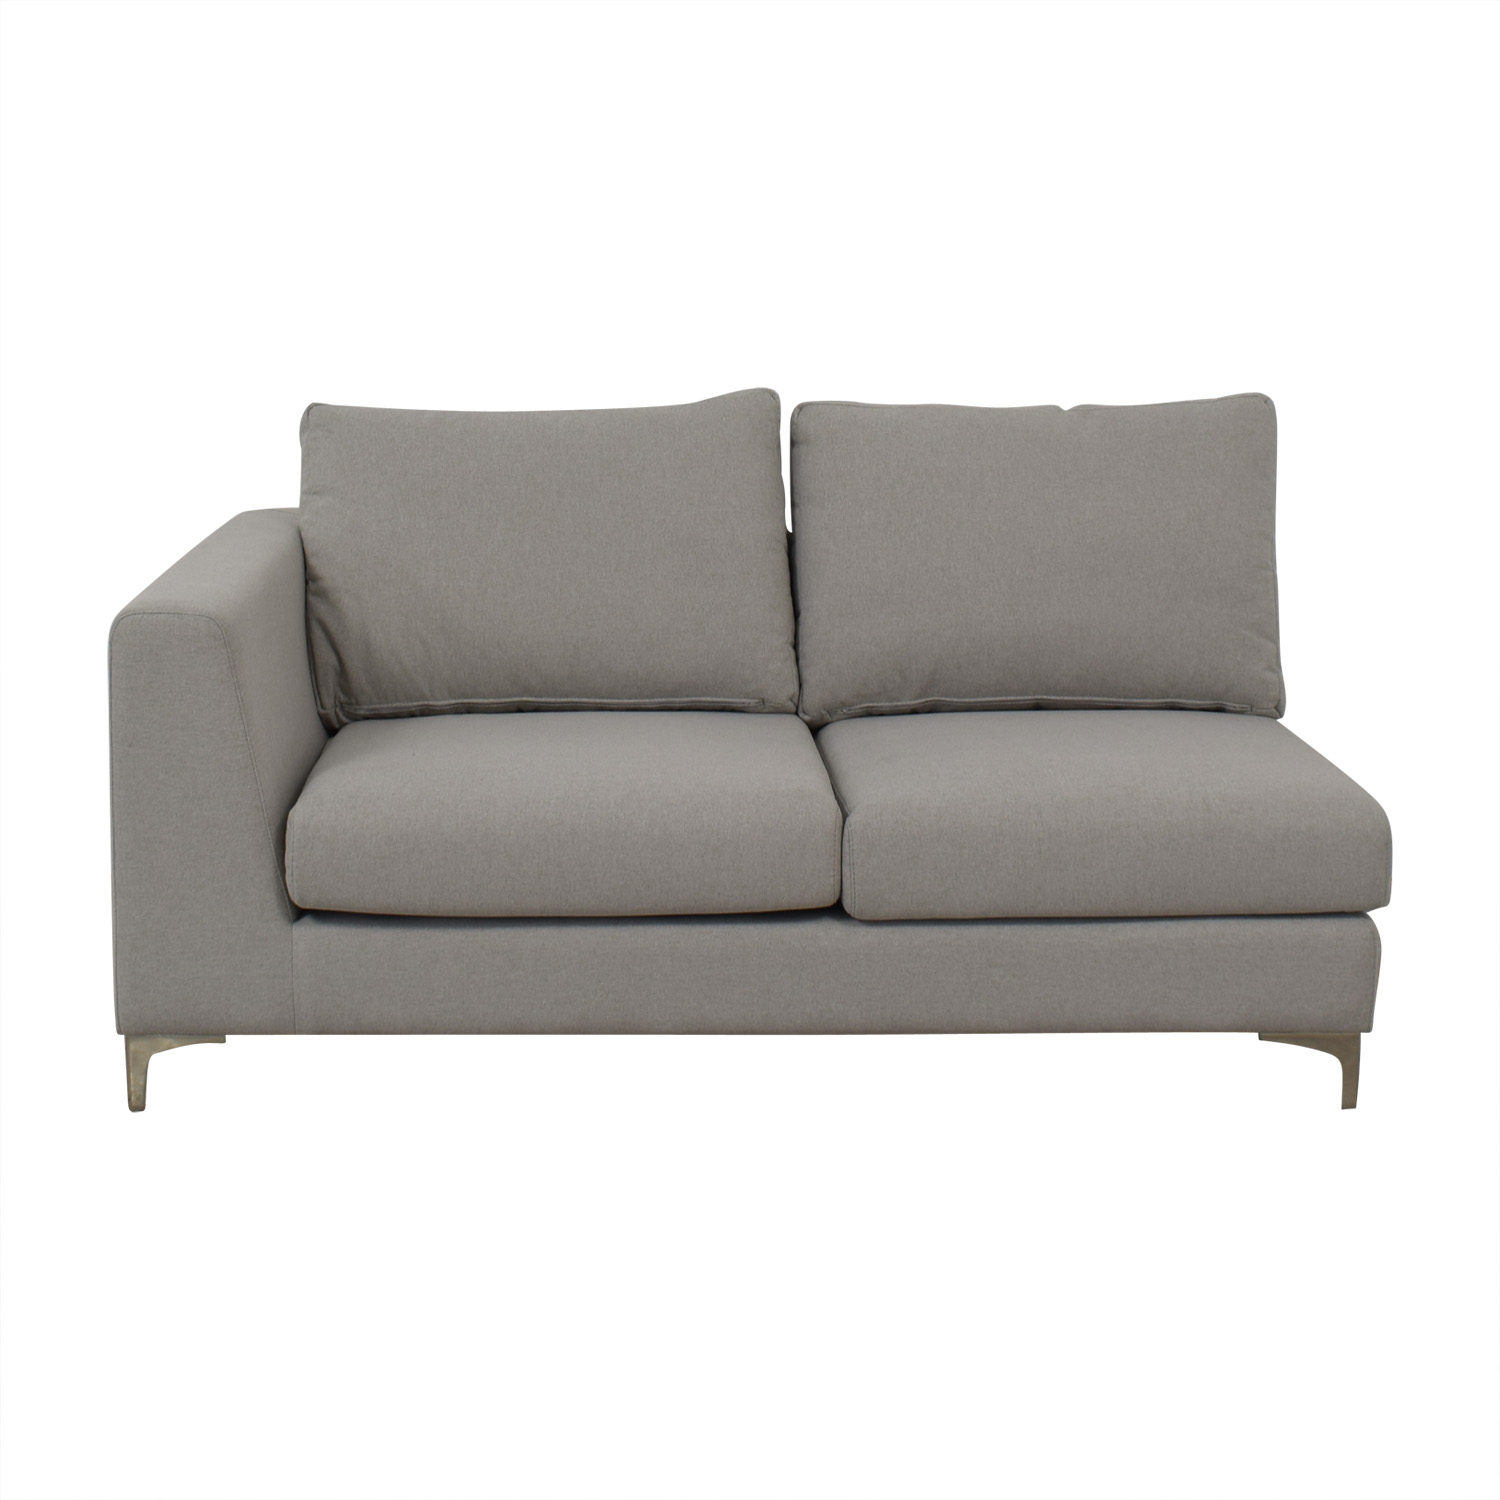 shop Mint Asher Right Extended Chaise Lounge Interior-Define-Hidden Sofas